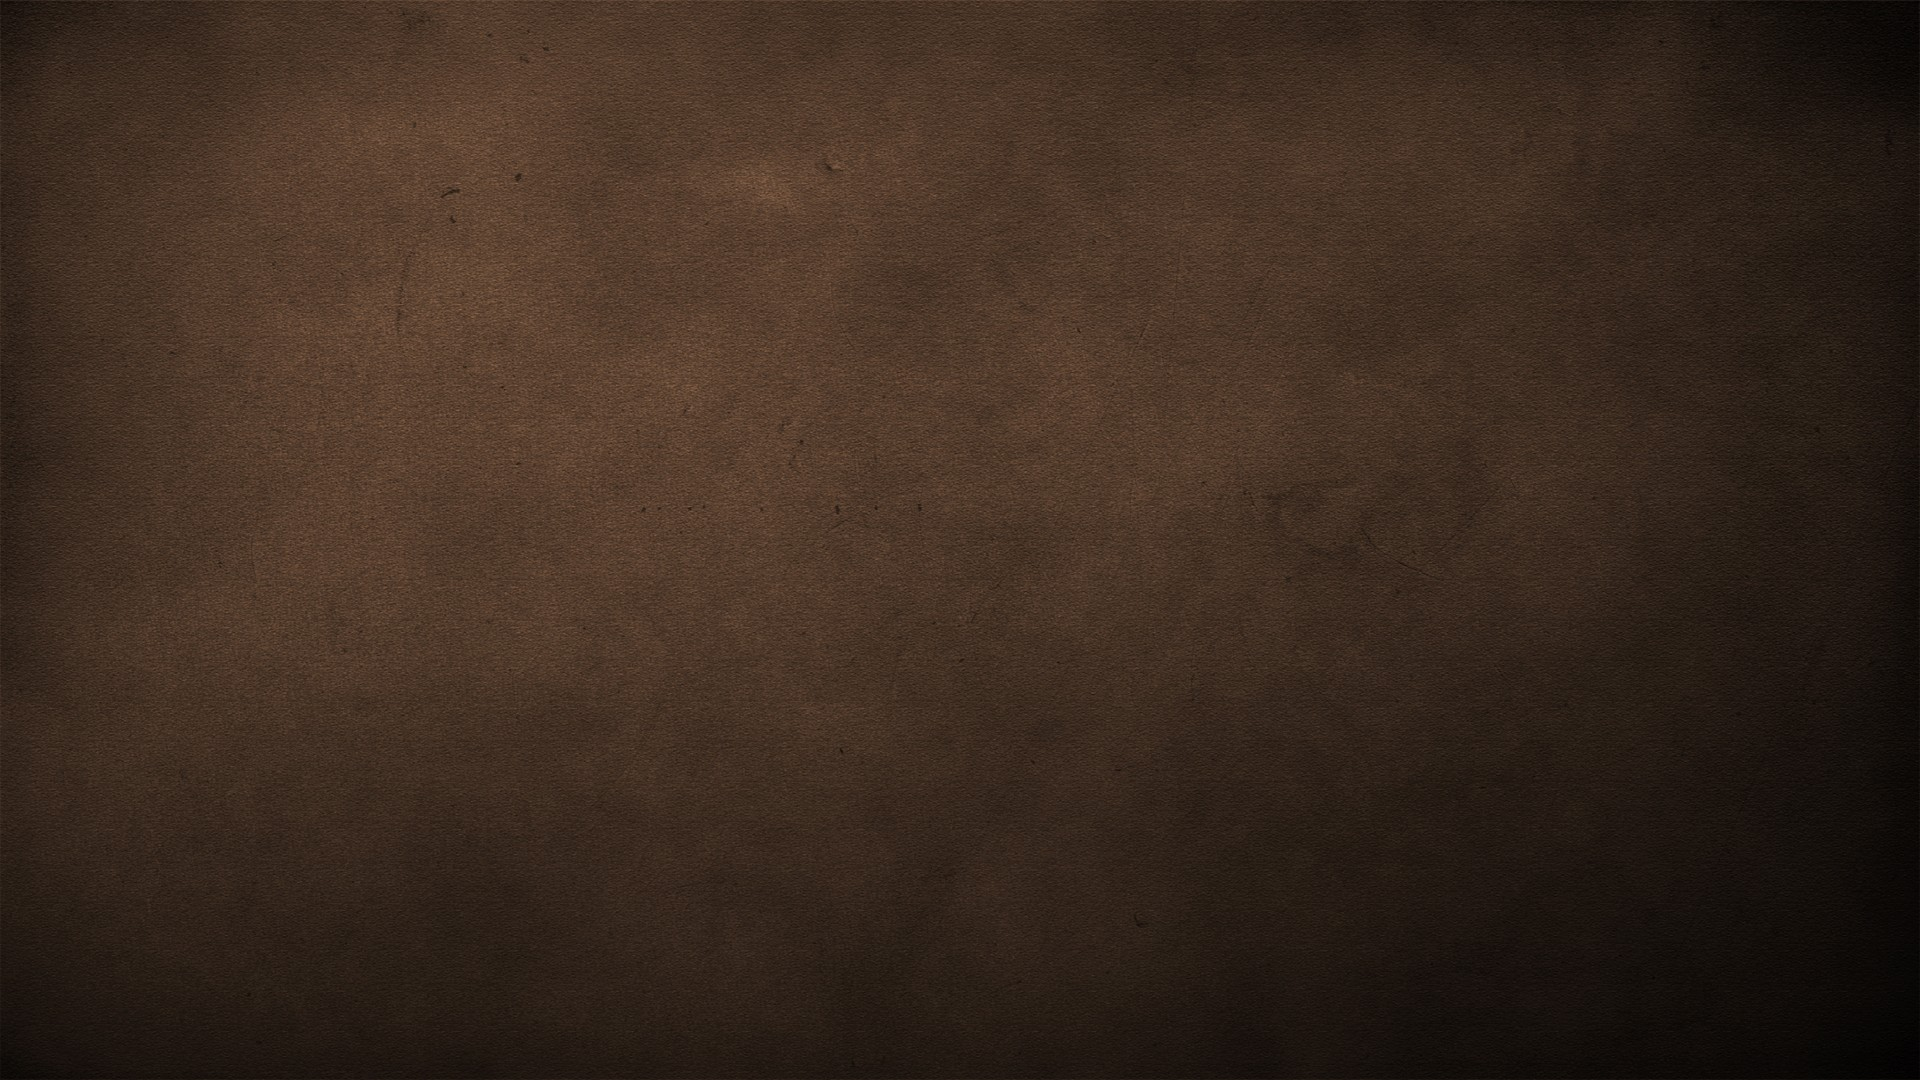 1920x1080 Brown Texture desktop PC and Mac wallpaper 1920x1080